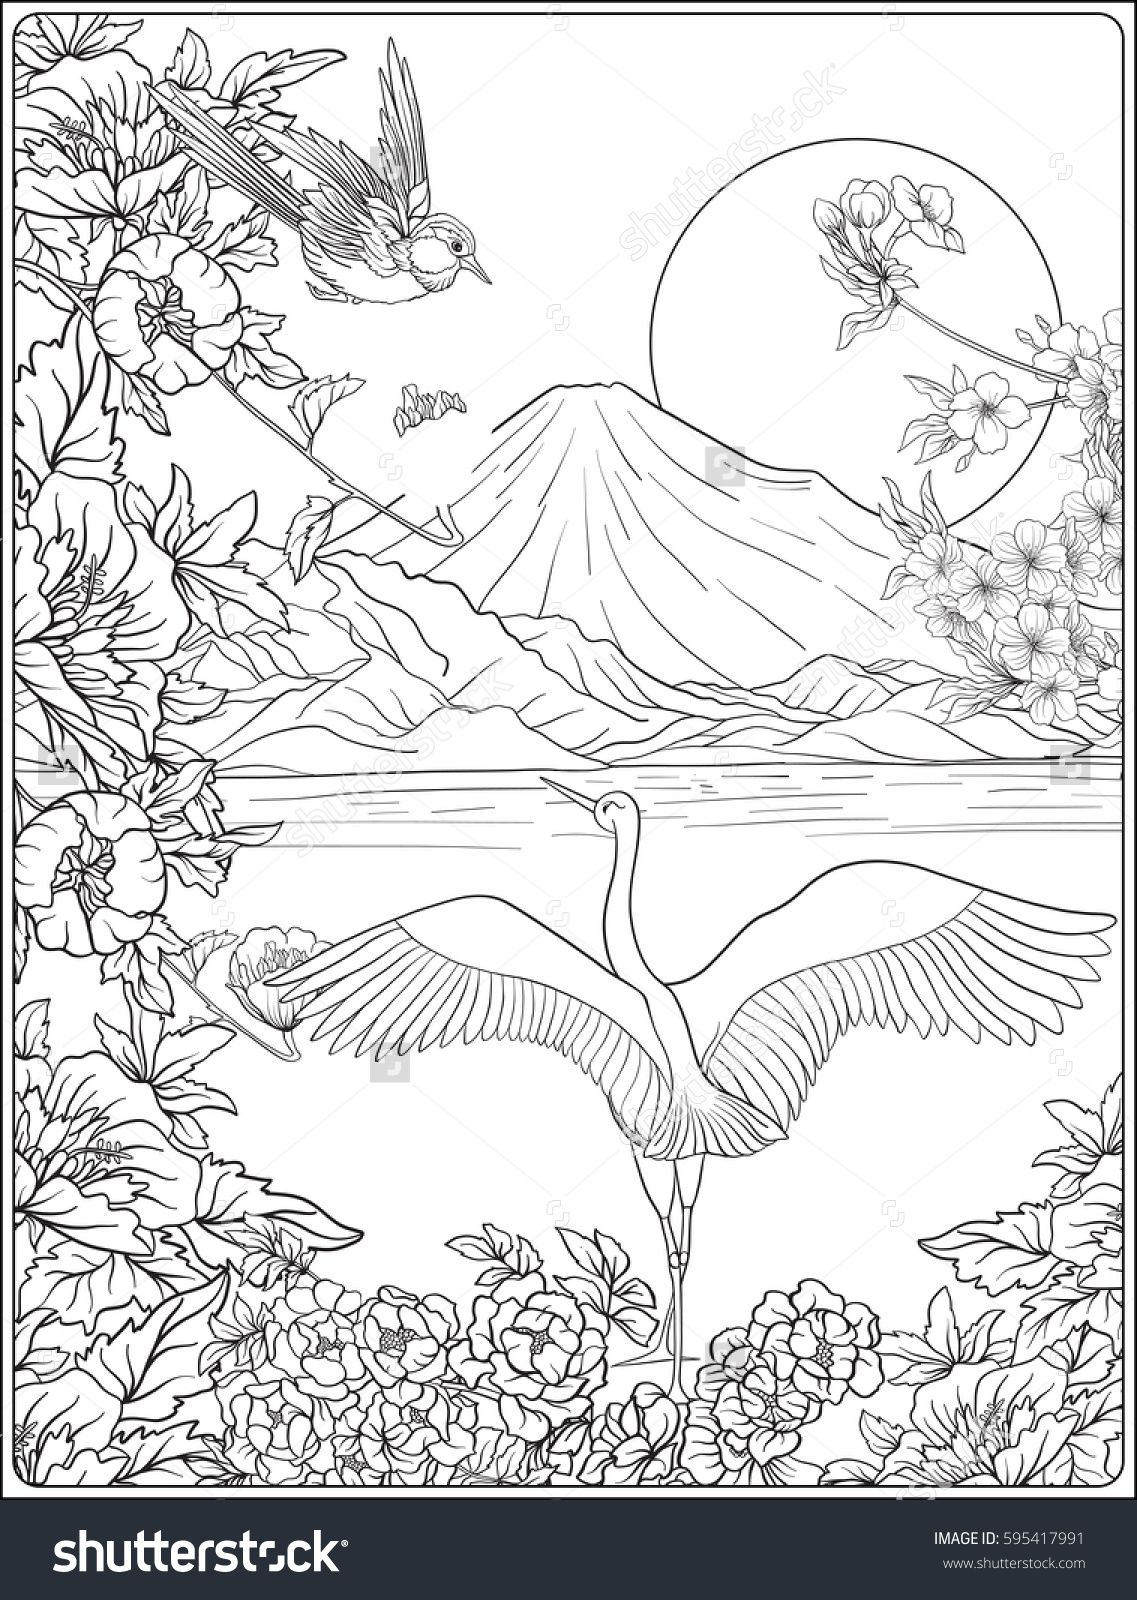 Japanese Landscape With Mount Fuji And Tradition Flowers And A Bird Outline Drawing Coloring Page Coloring Boo Coloring Pages Coloring Books Outline Drawings